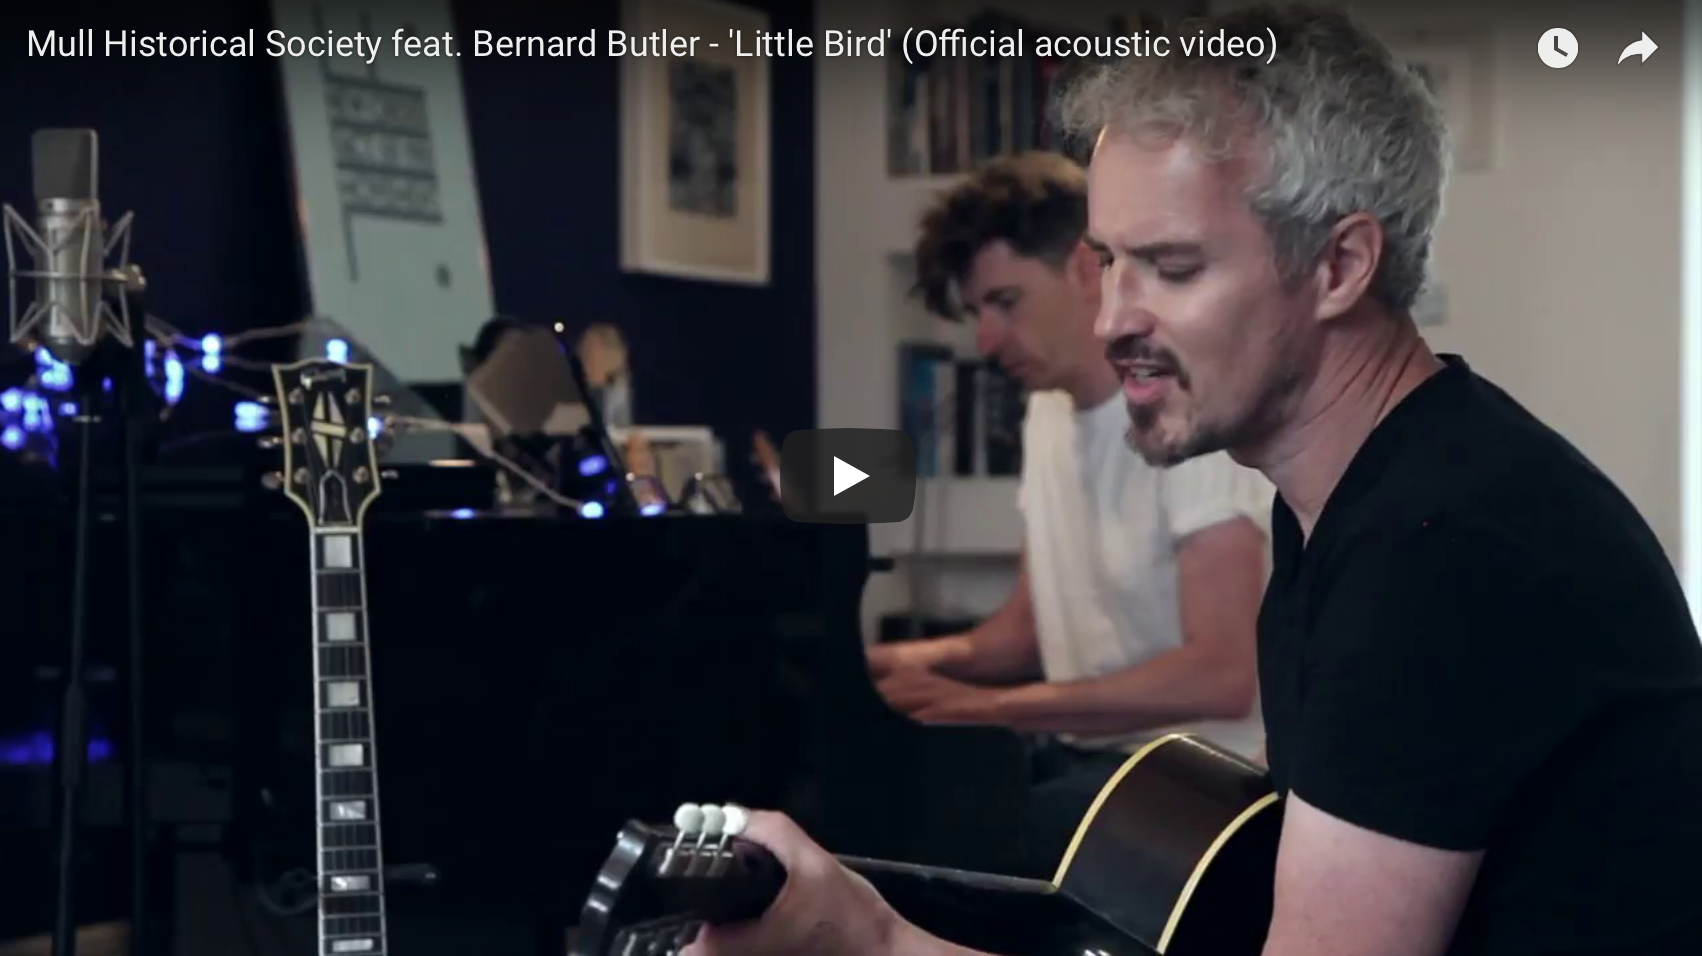 New Mull Historical Society single: 'Little Bird' / with acoustic version of 'Barcode Bypass'